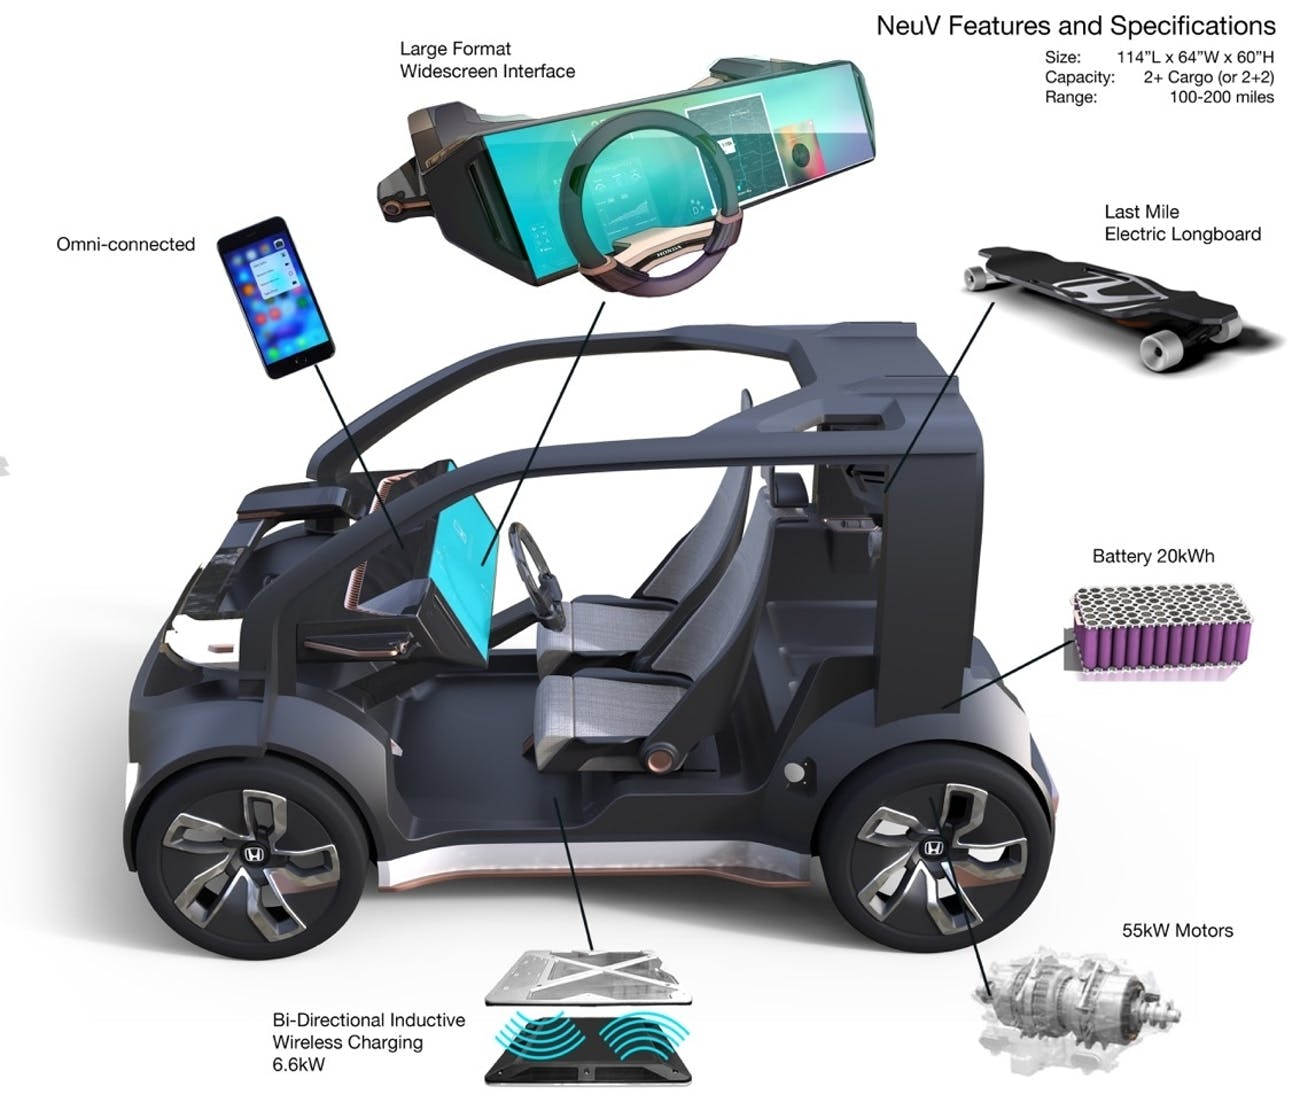 Honda Reveals NeuV Concept Car with Tesla-Like Features   Inverse on paintball golf cart, industrial golf cart, fish golf cart, bike golf cart, junior golf cart, board golf cart, football golf cart, wood golf cart, gopro golf cart, snow golf cart, motorized skateboard golf cart, egg golf cart, fun golf cart, gun golf cart, girls golf cart, cruiser golf cart, surfing golf cart, sunset golf cart, retro golf cart, speed golf cart,